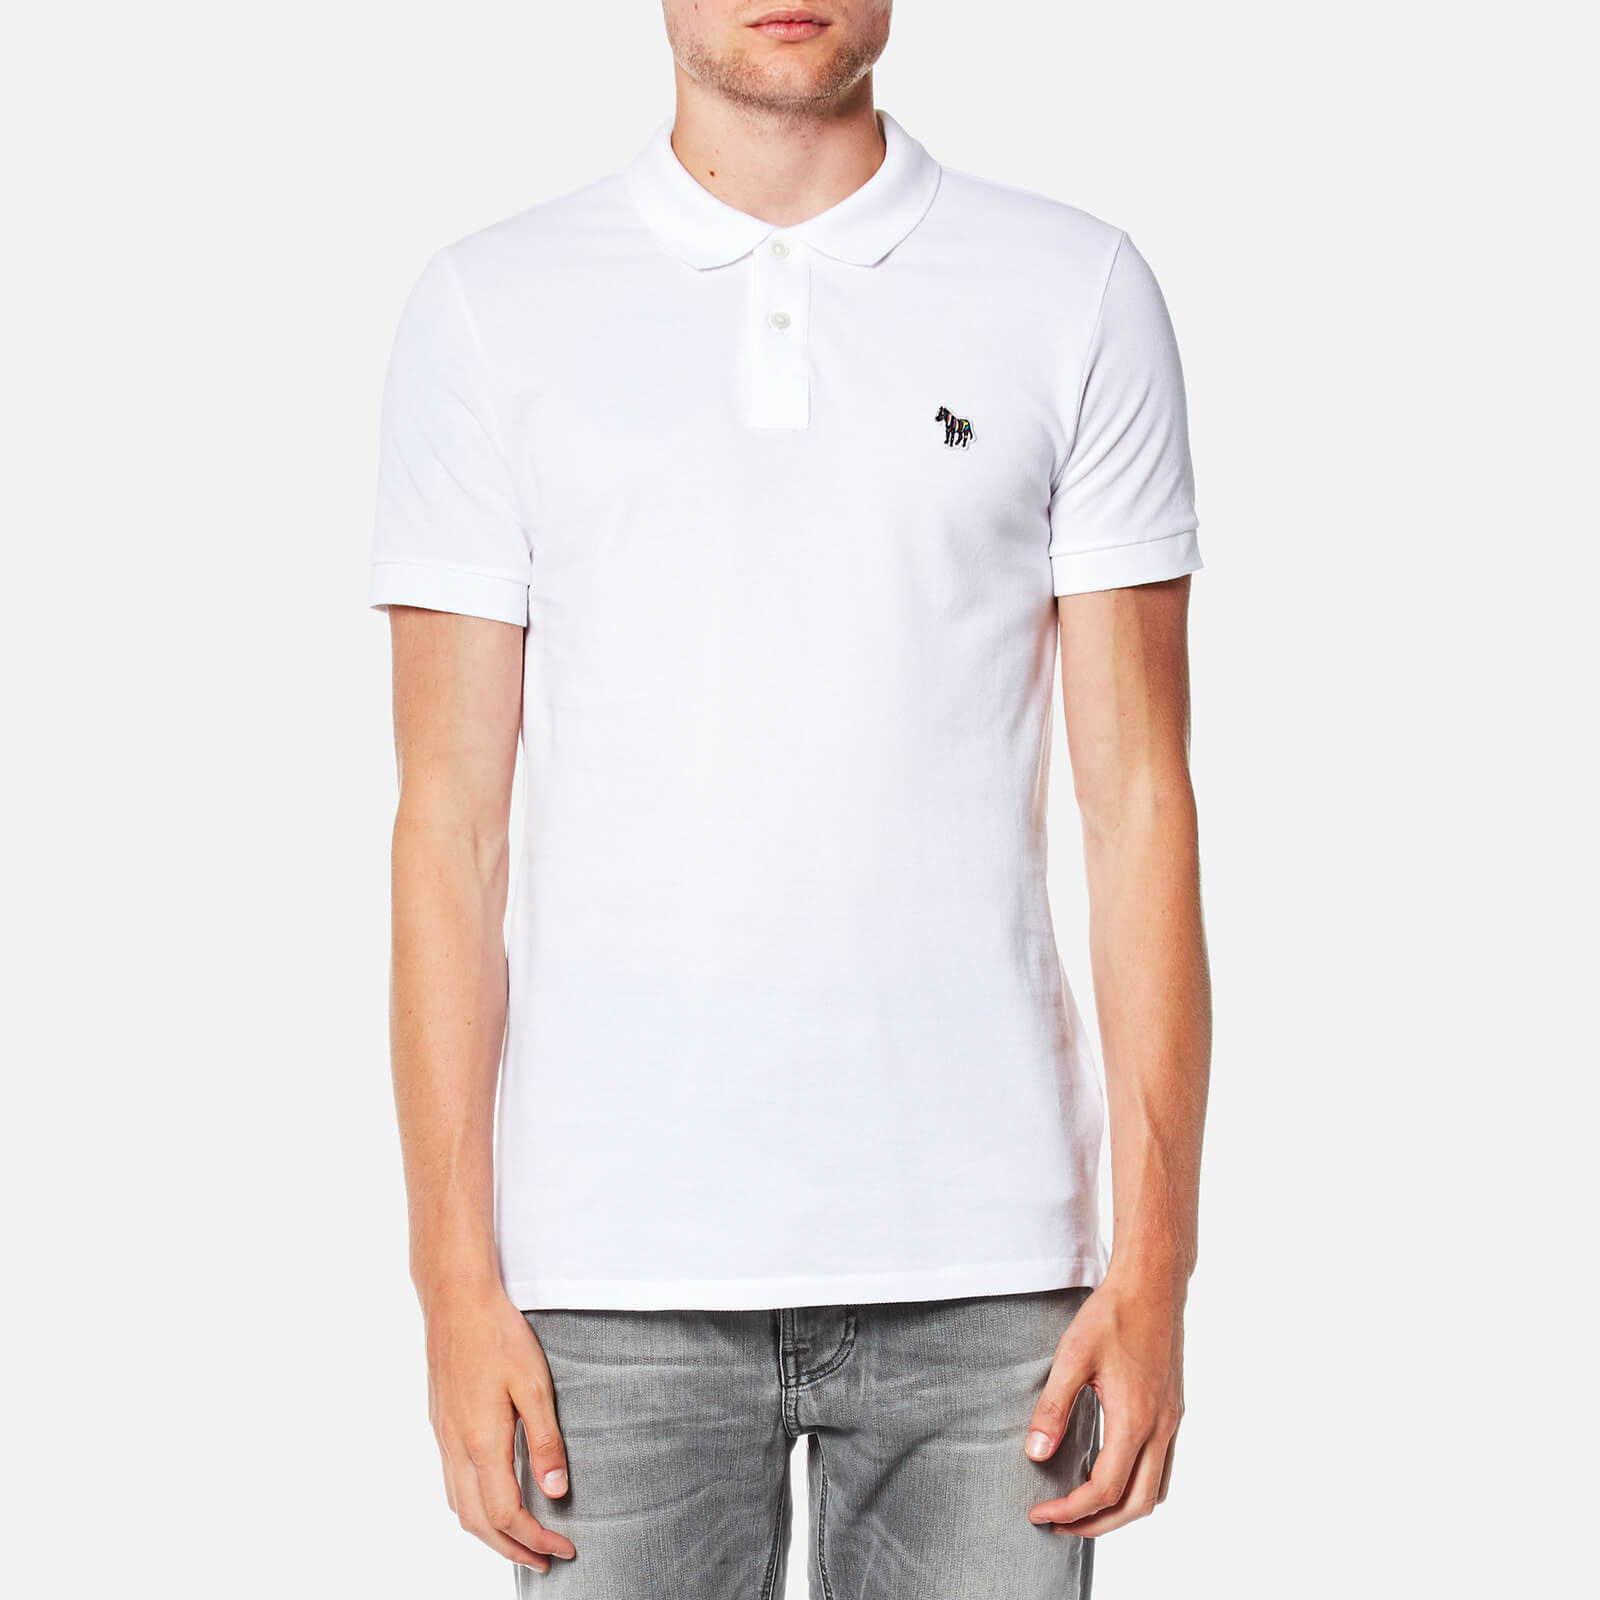 b626ff79b PS by Paul Smith Men s Slim Fit Zebra Logo Polo Shirt - White - Free UK  Delivery over £50